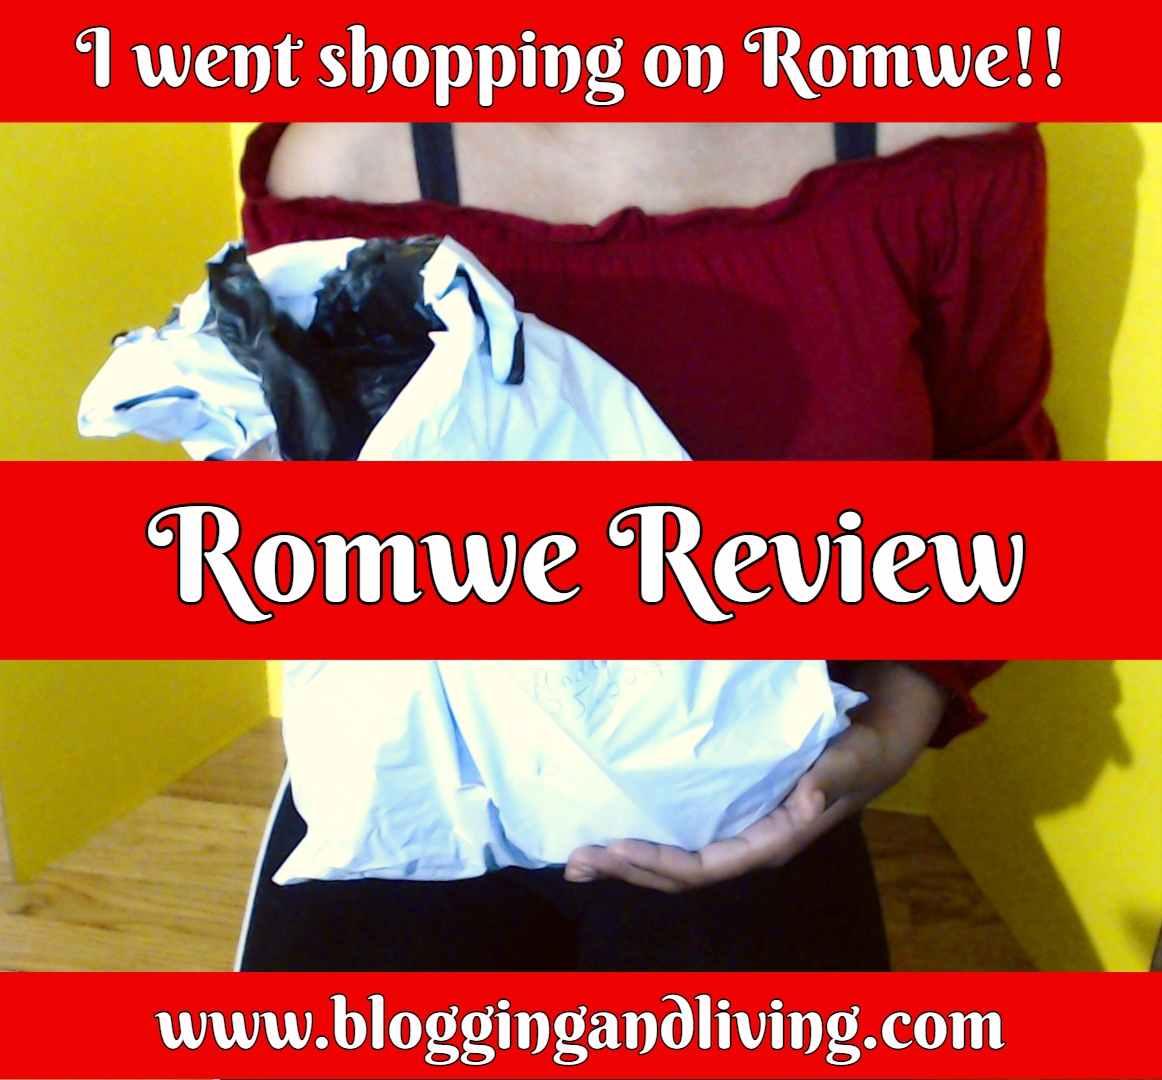 I bought some clothes on Romwe! - Romwe Review